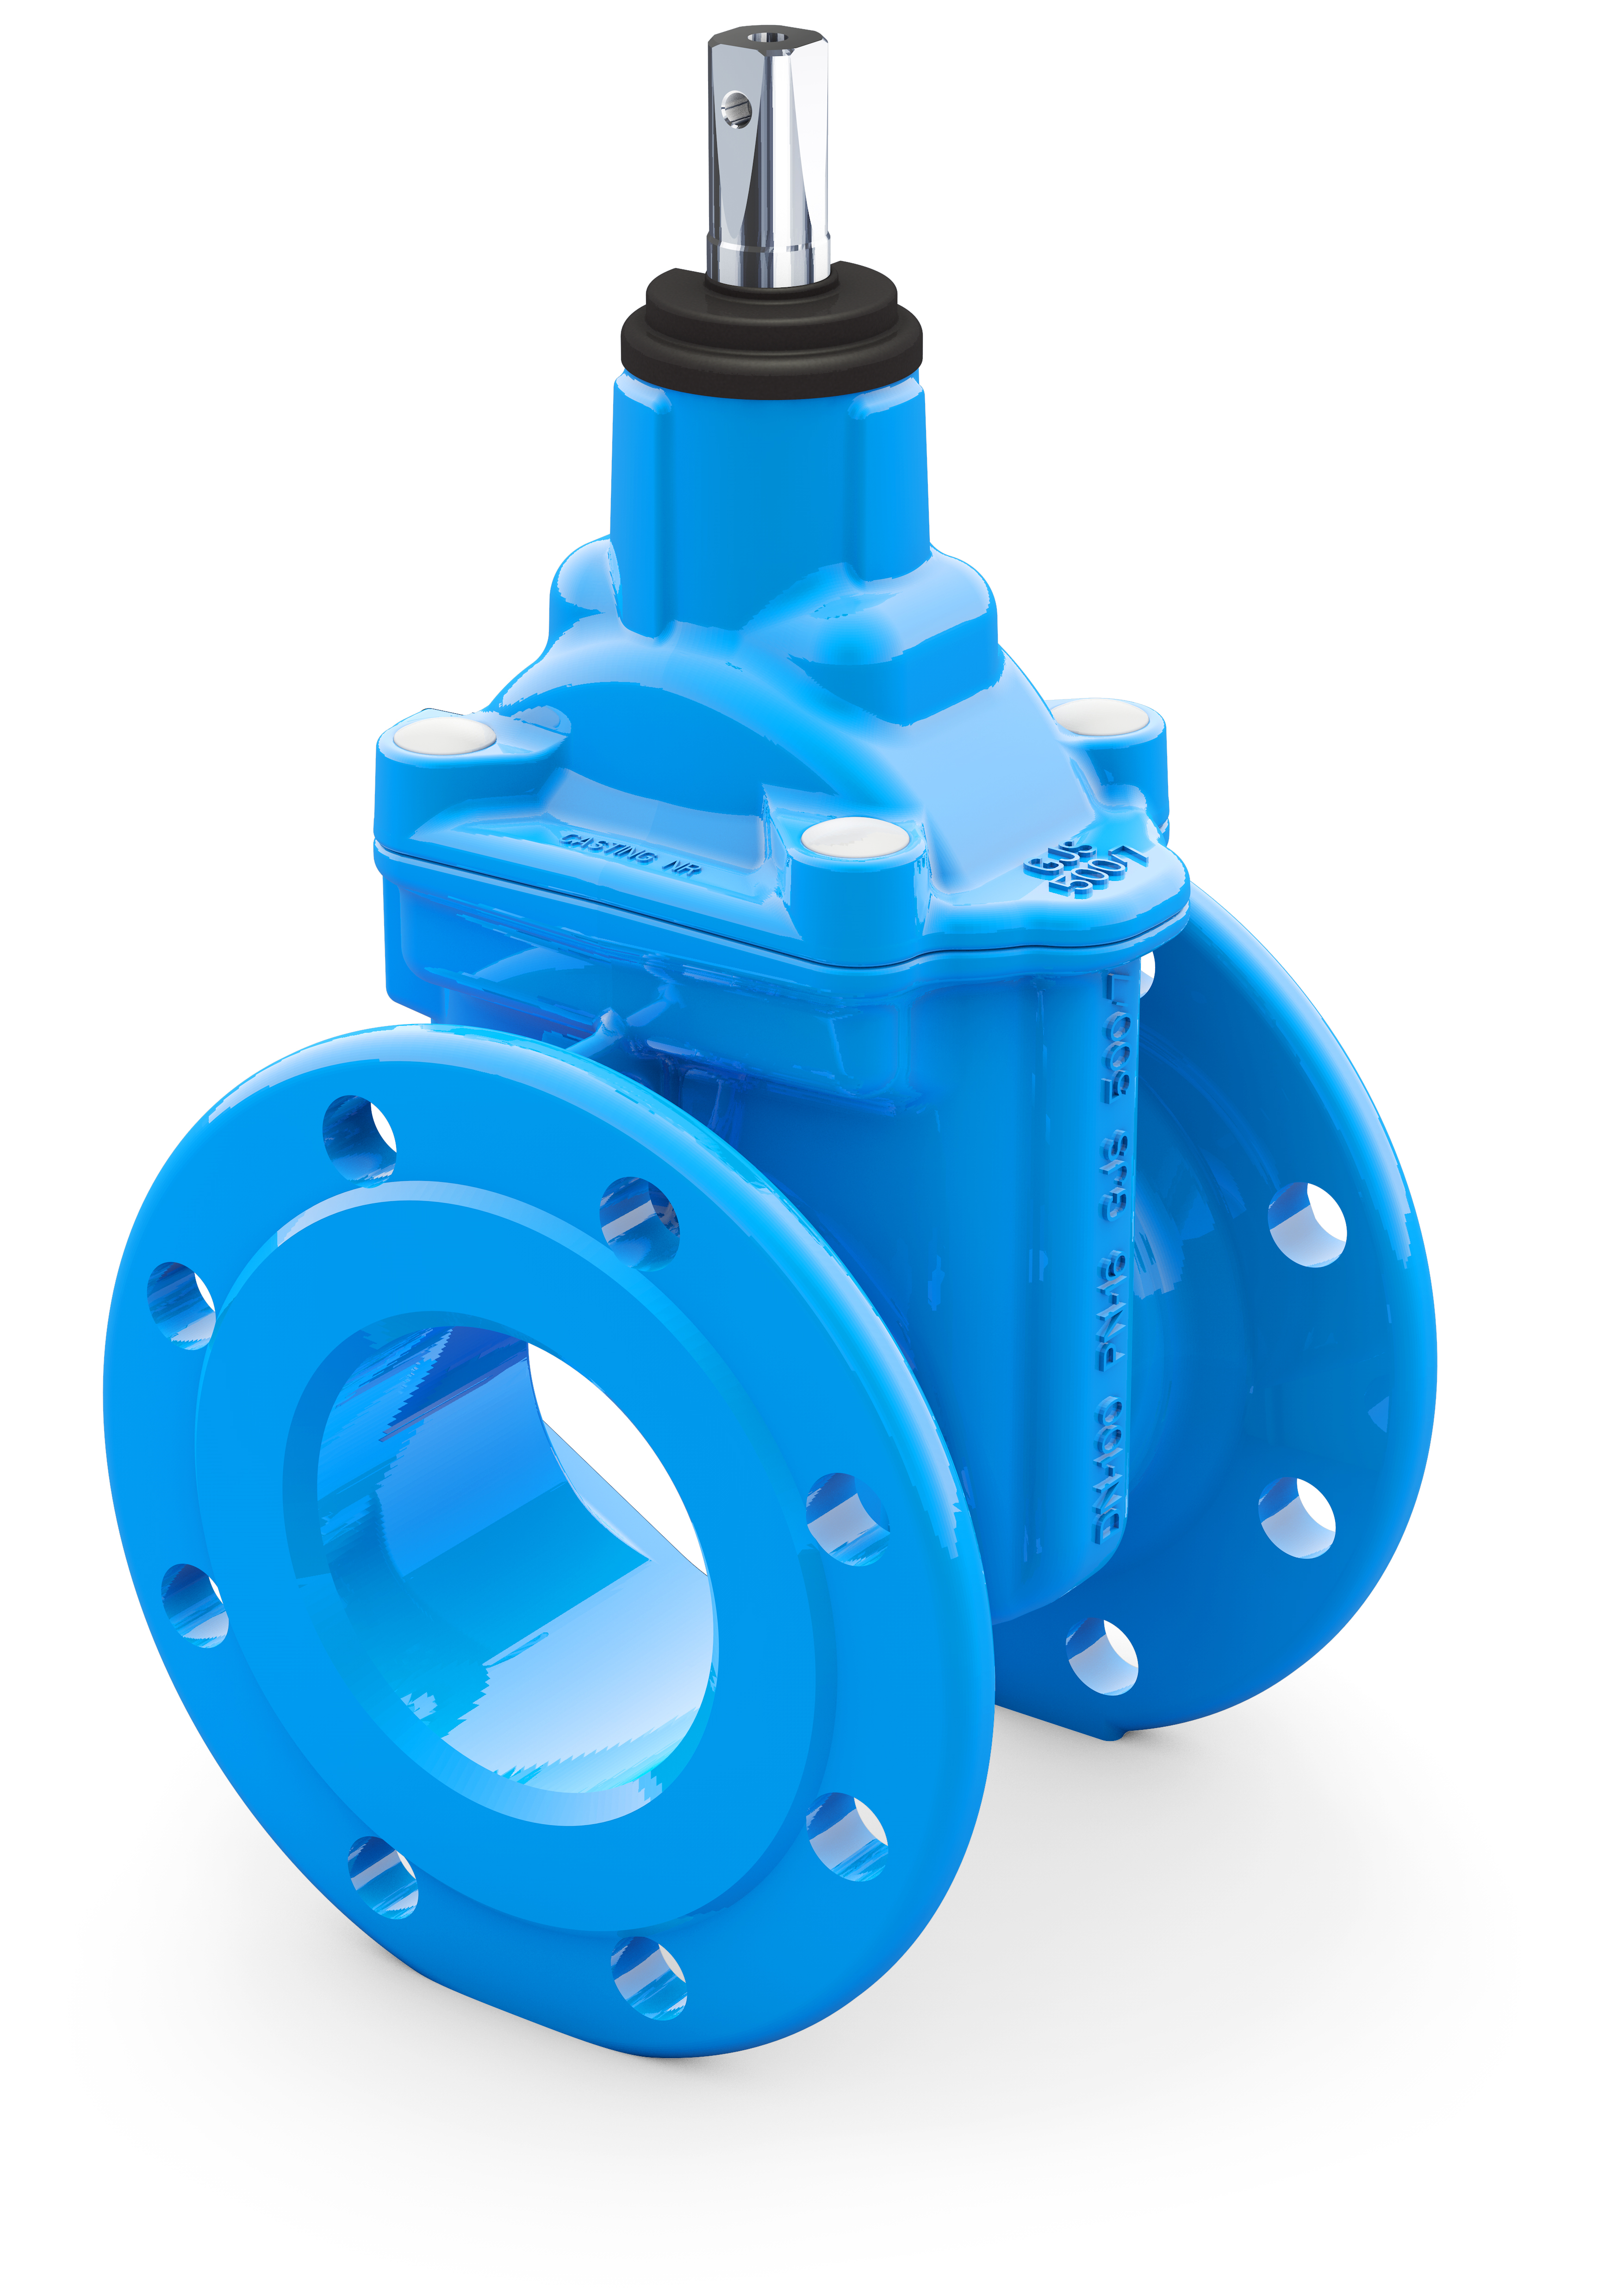 Resiliant Seated Gate Valve INFINITY